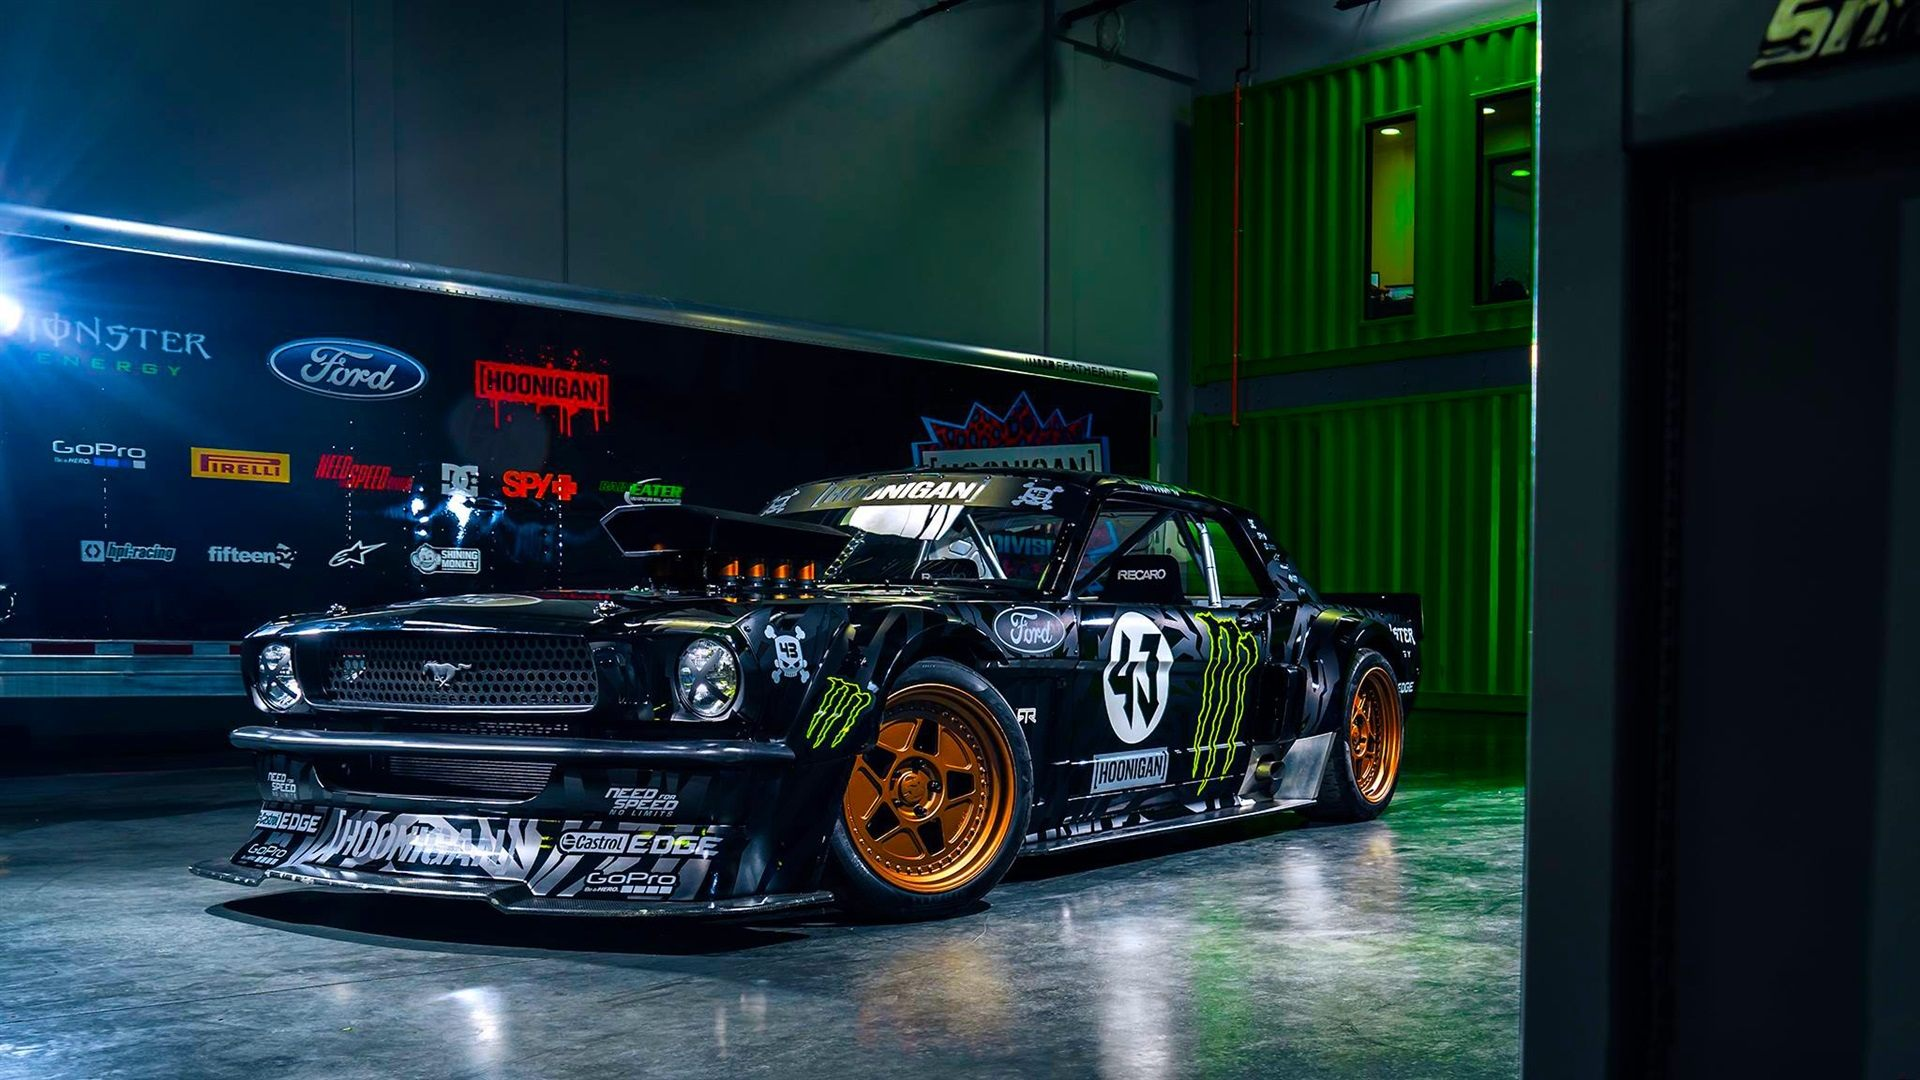 1967 Ford Mustang Rtr Classic Car By Rogue Rattlesnake On Deviantart